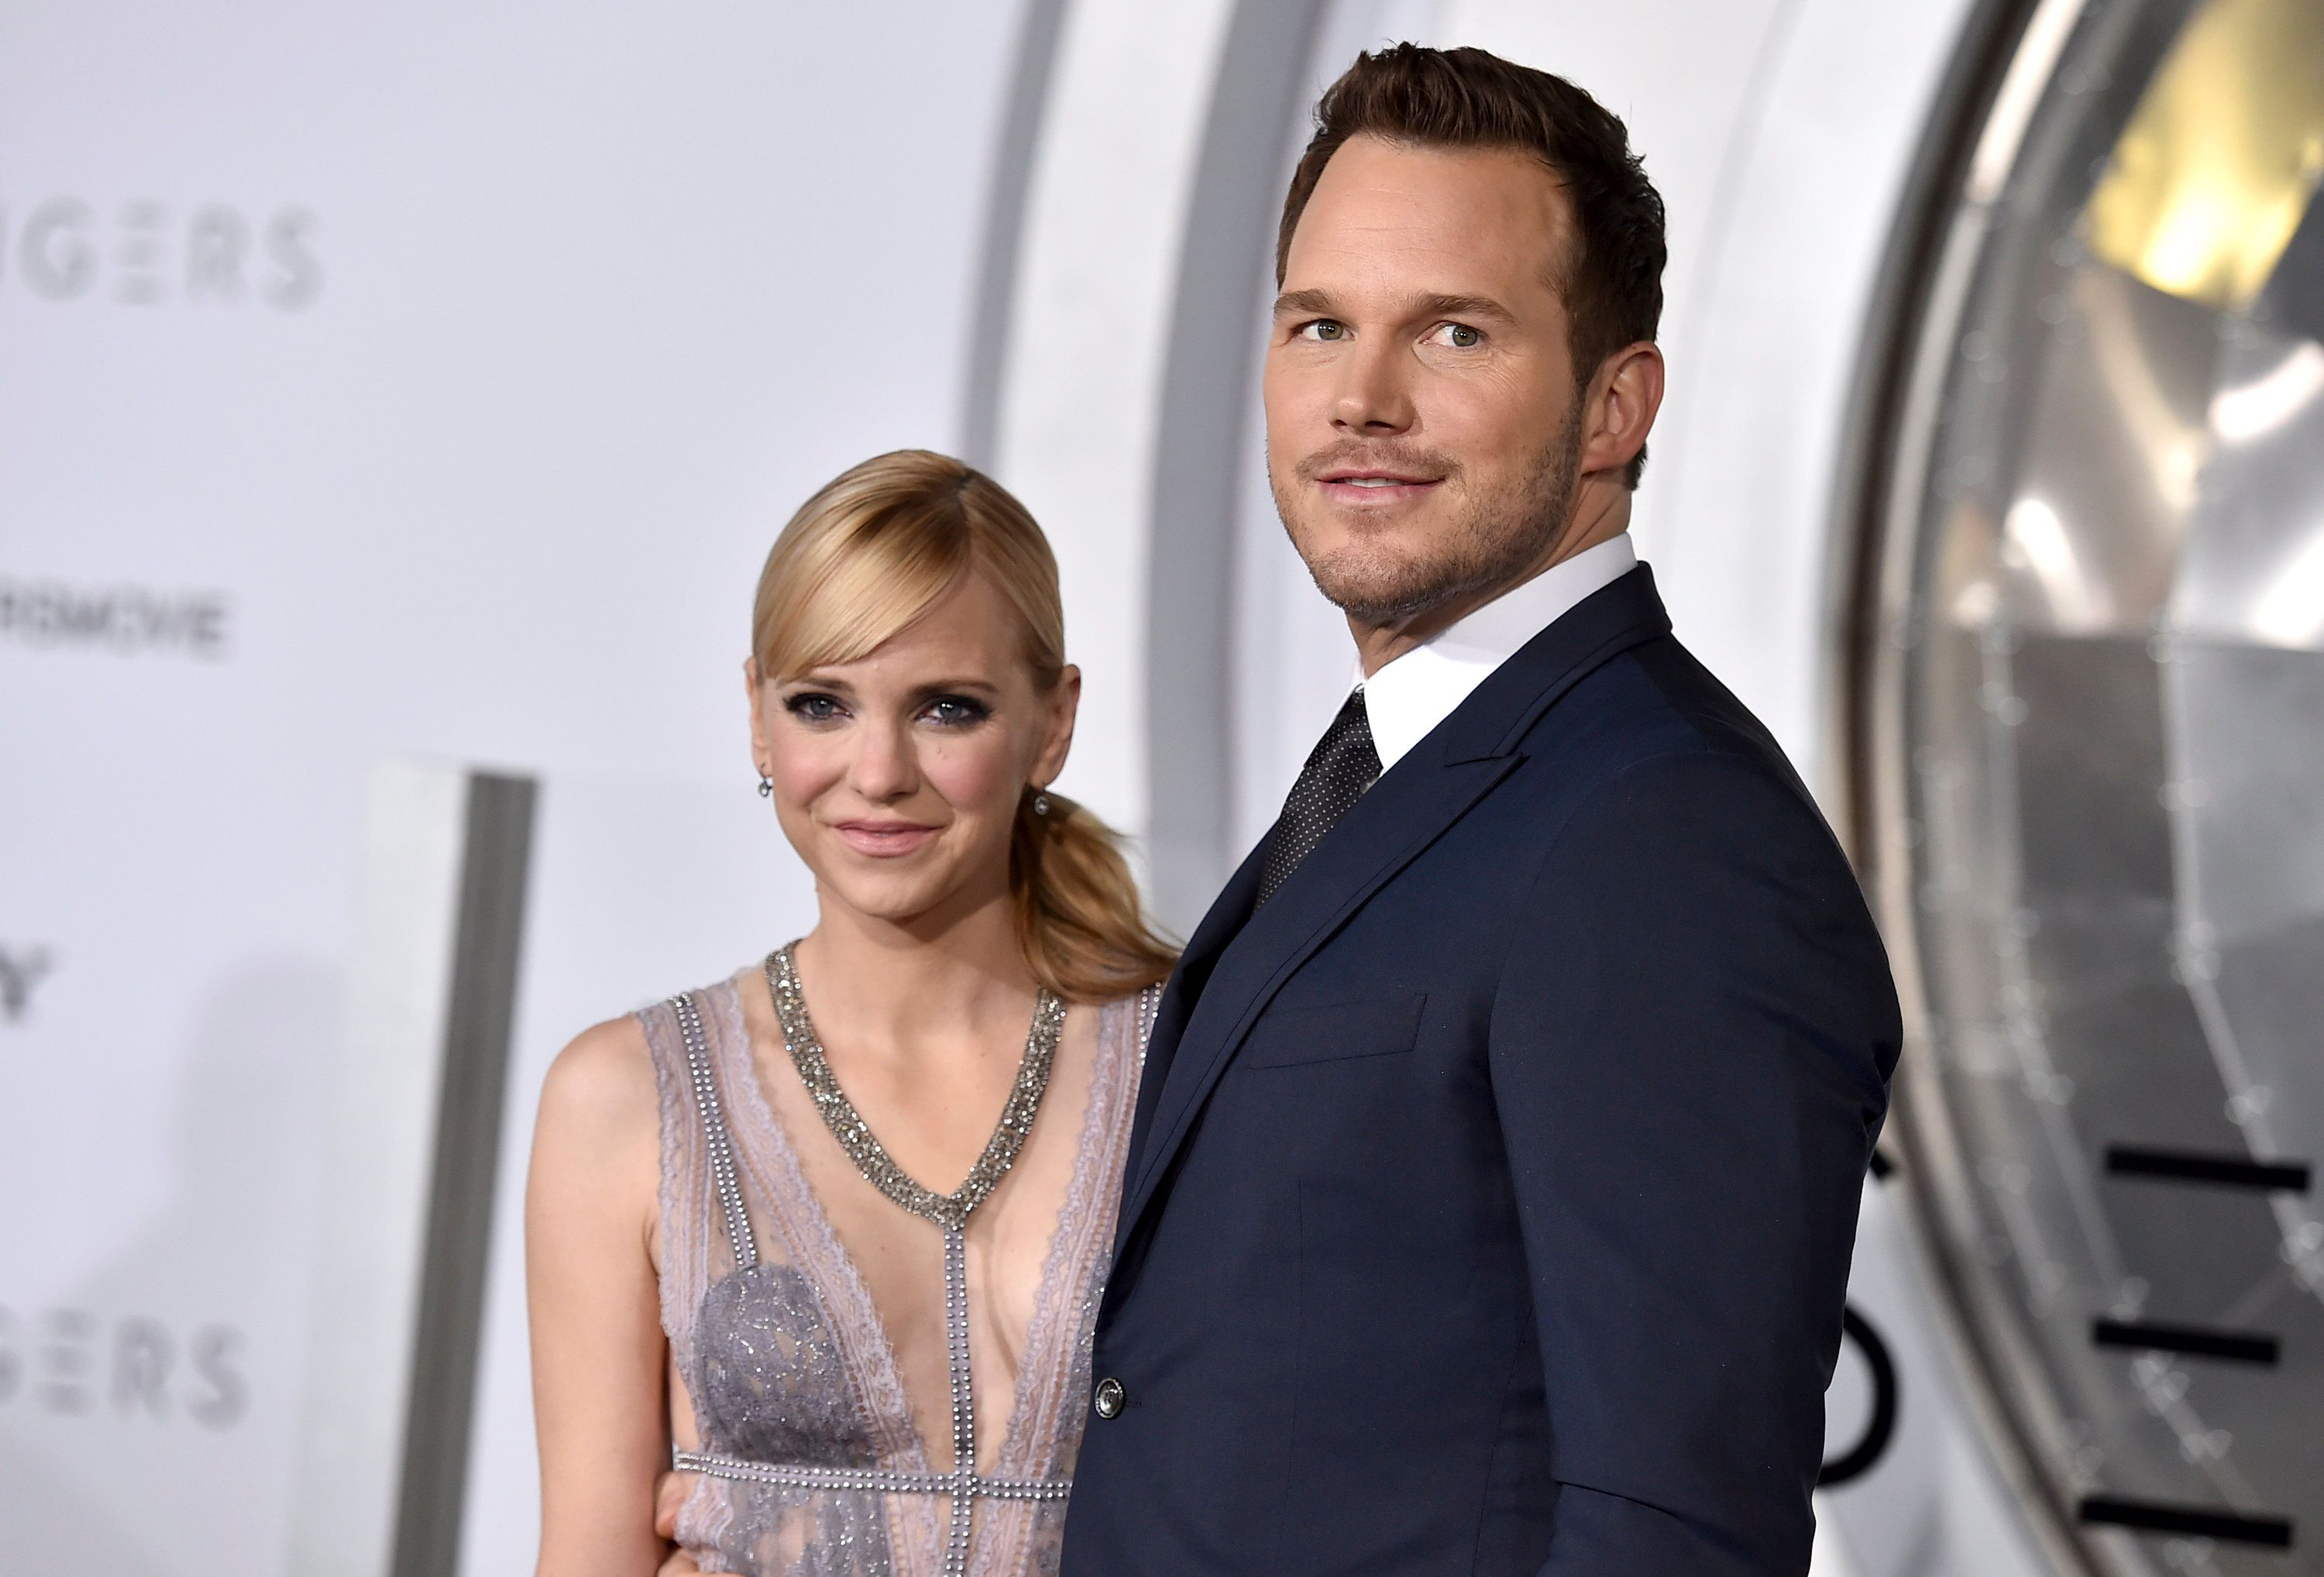 """Chris Pratt, right, and Anna Faris arrive at the Los Angeles premiere of """"Passengers""""at the Village Theatre Westwood on Wednesday, Dec. 14, 2016. (Photo by Jordan Strauss/Invision/AP)"""